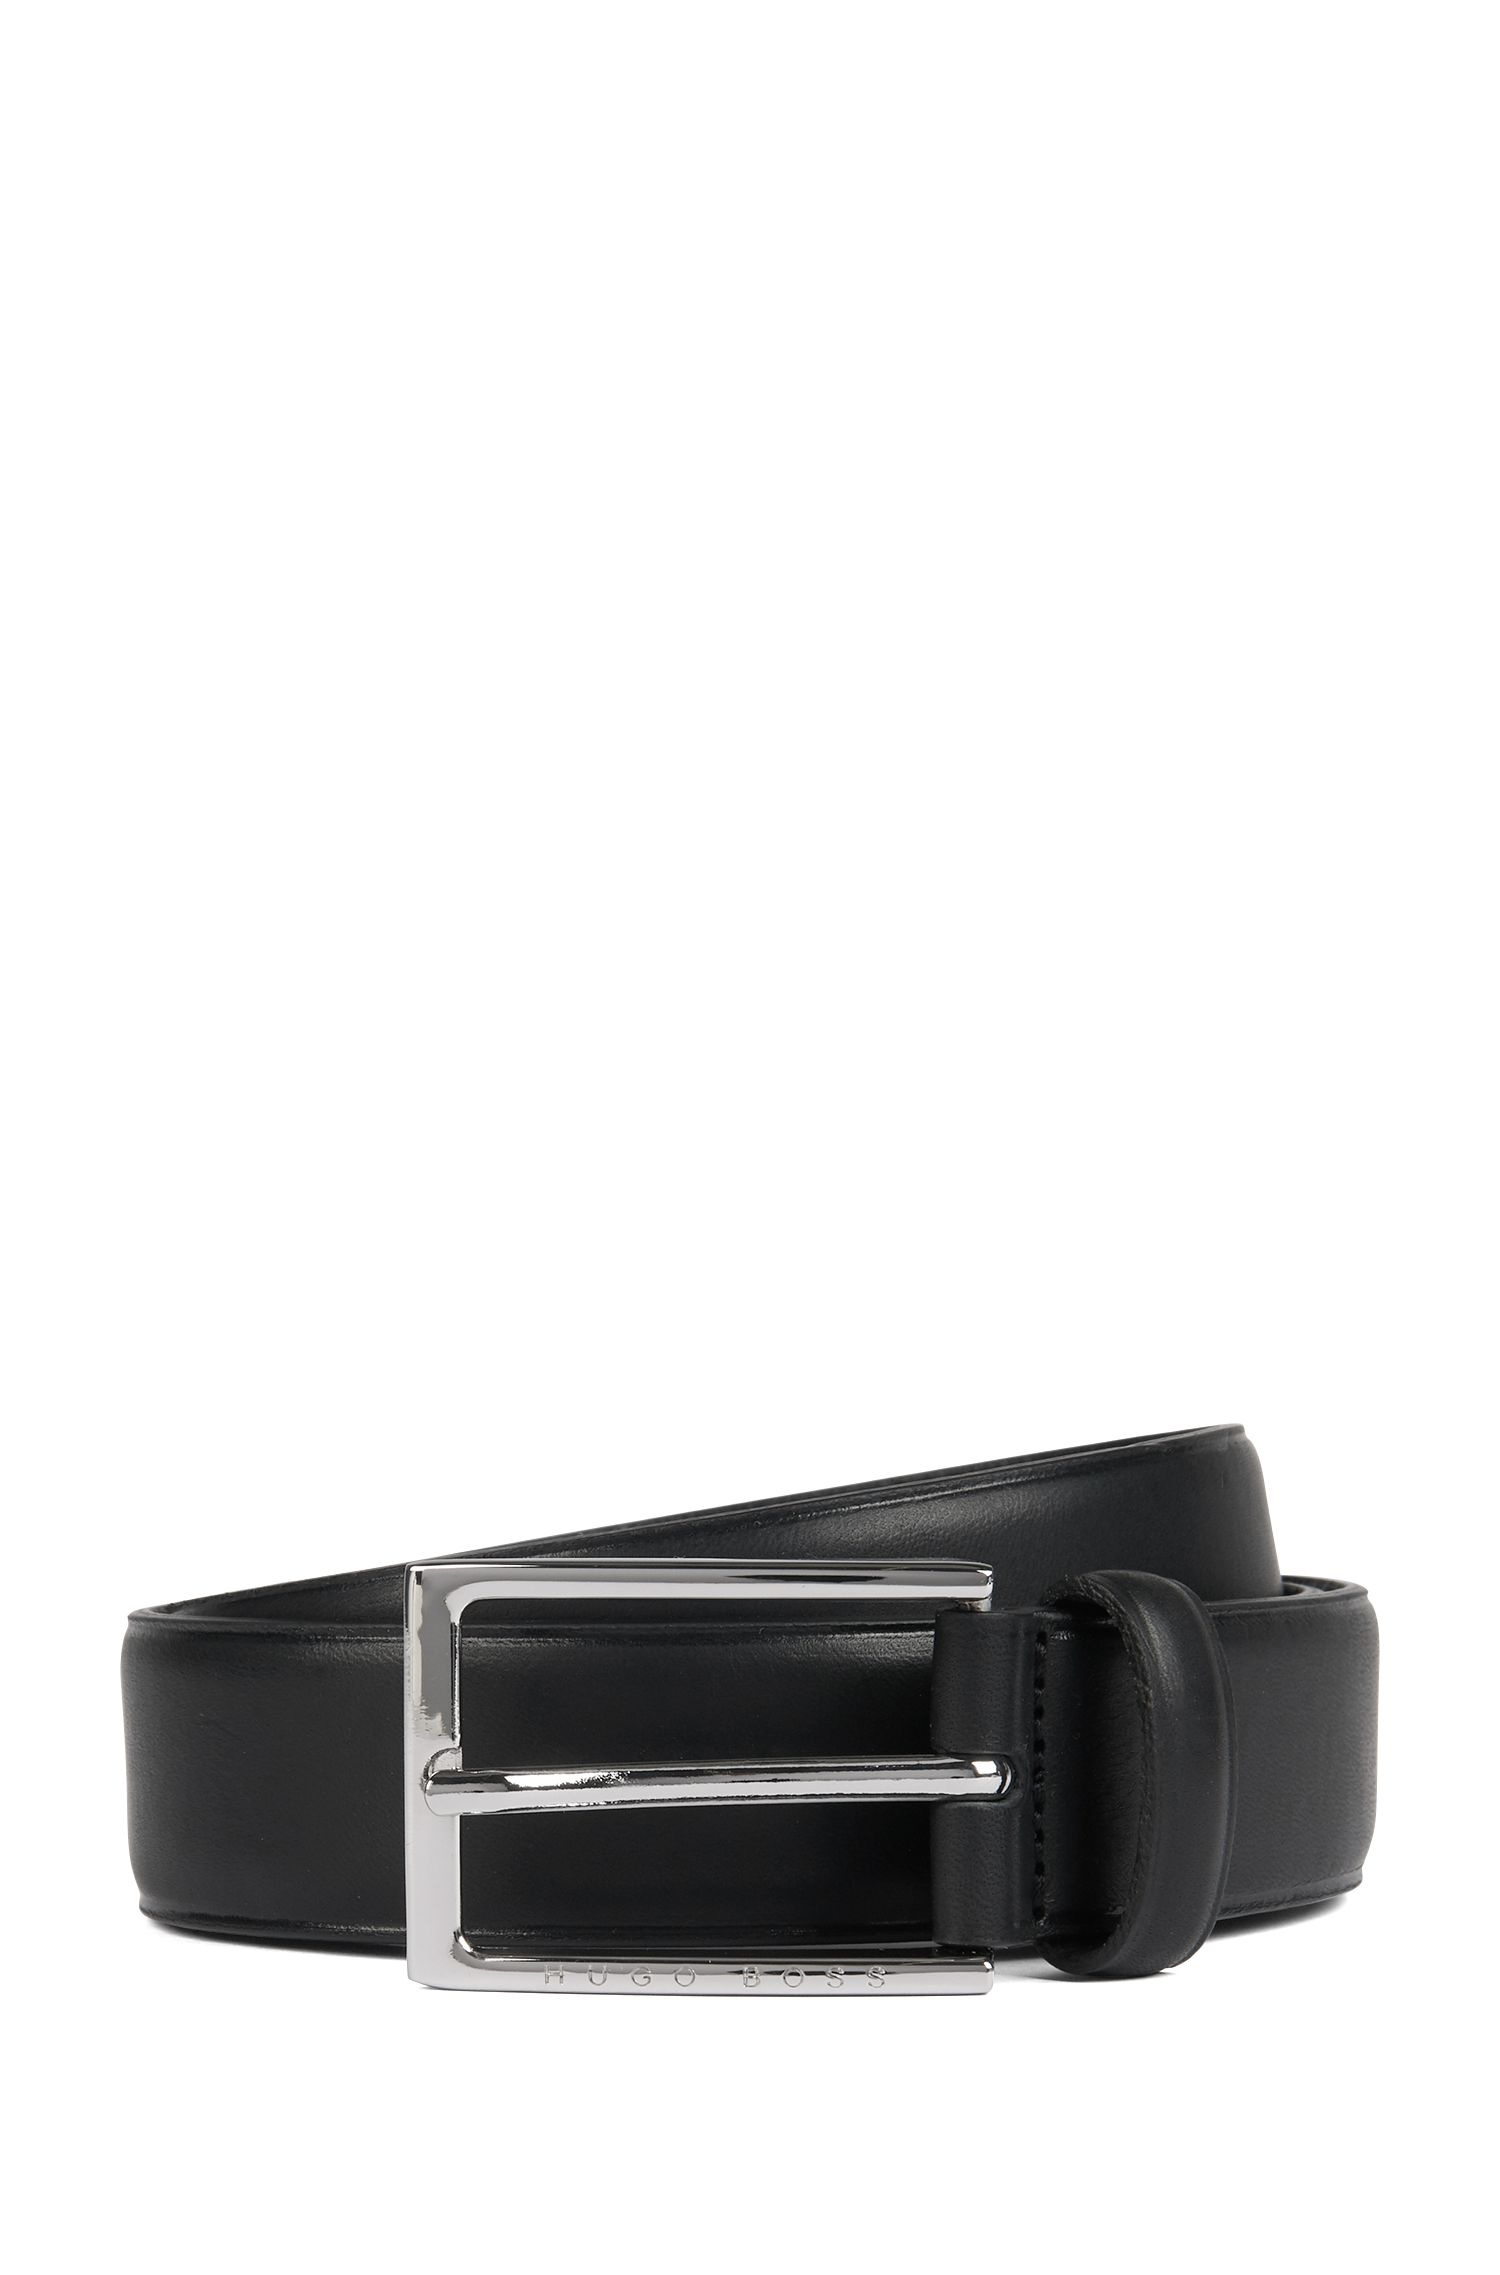 Pin-buckle belt in leather with heat-embossed detailing, Black